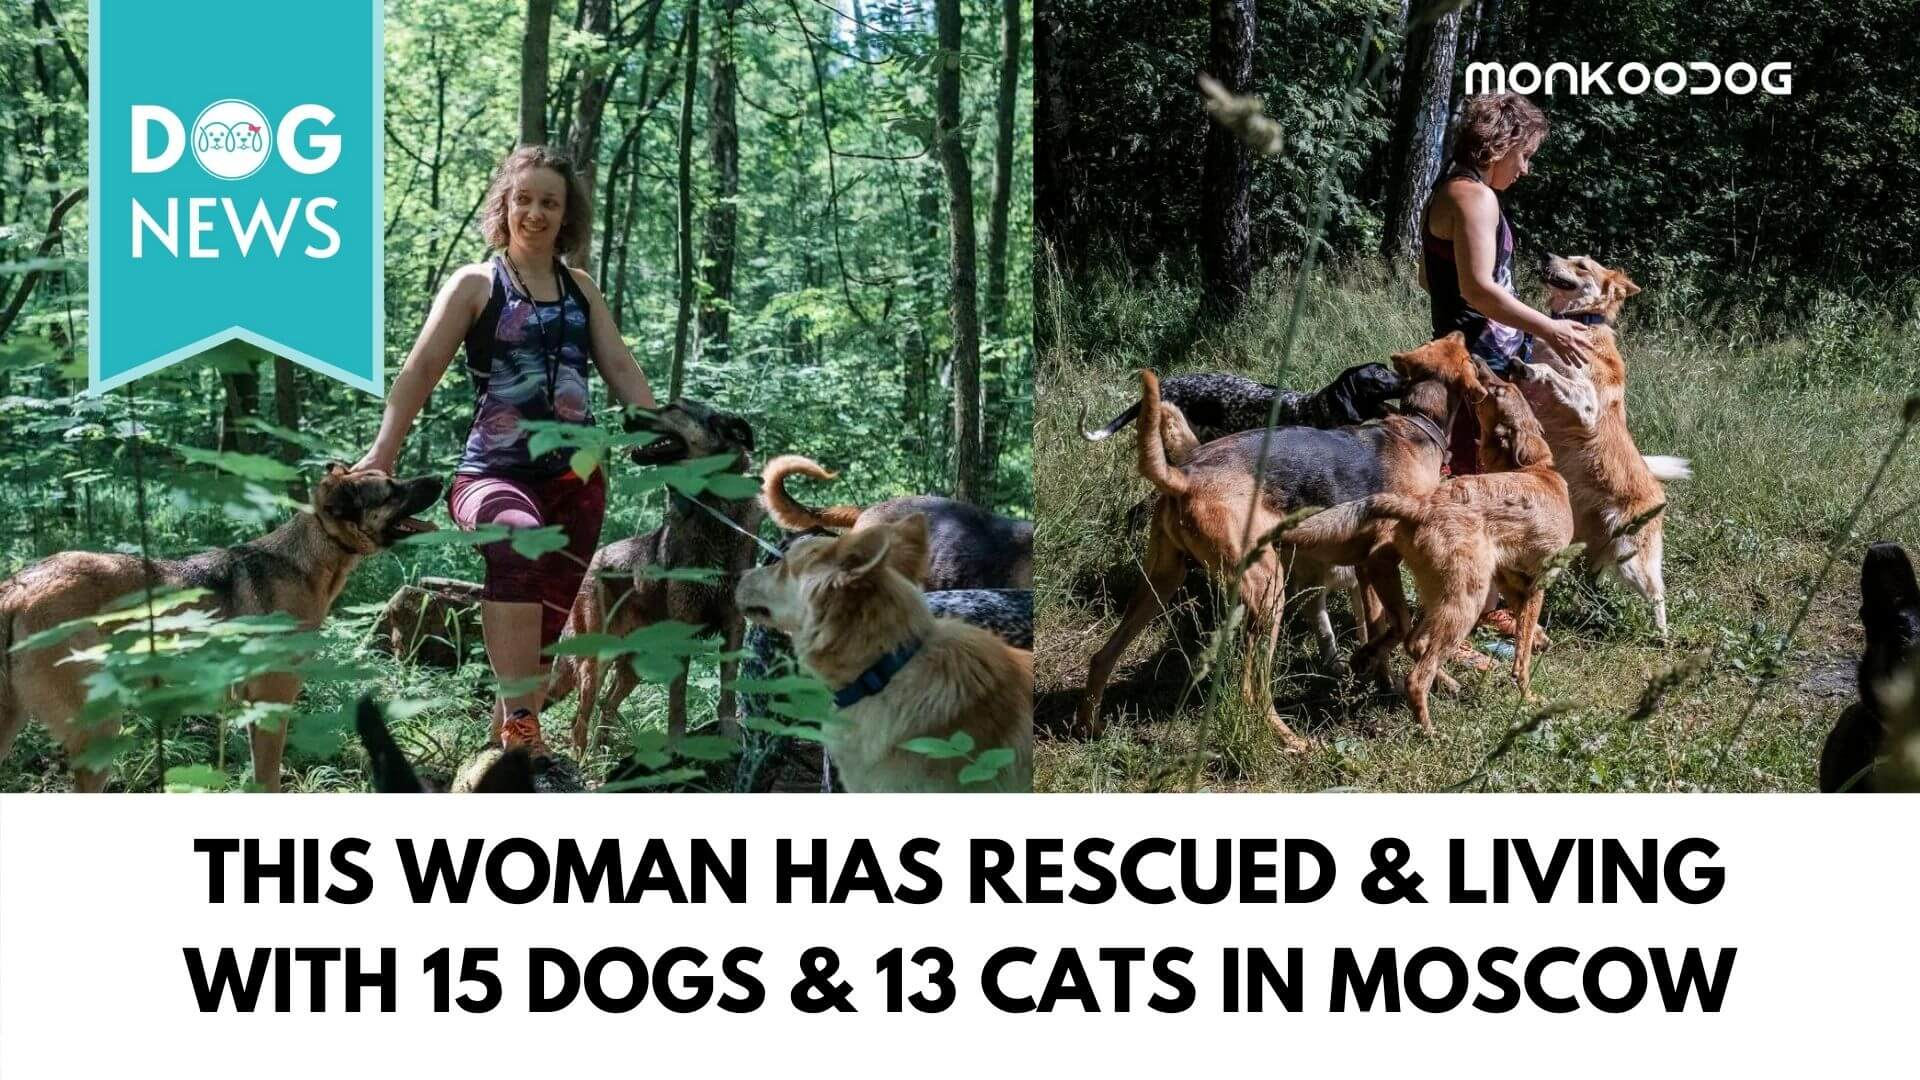 Anastasia Pomorino - The story of a woman who dedicated her entire life to saving the lives of strays of Moscow